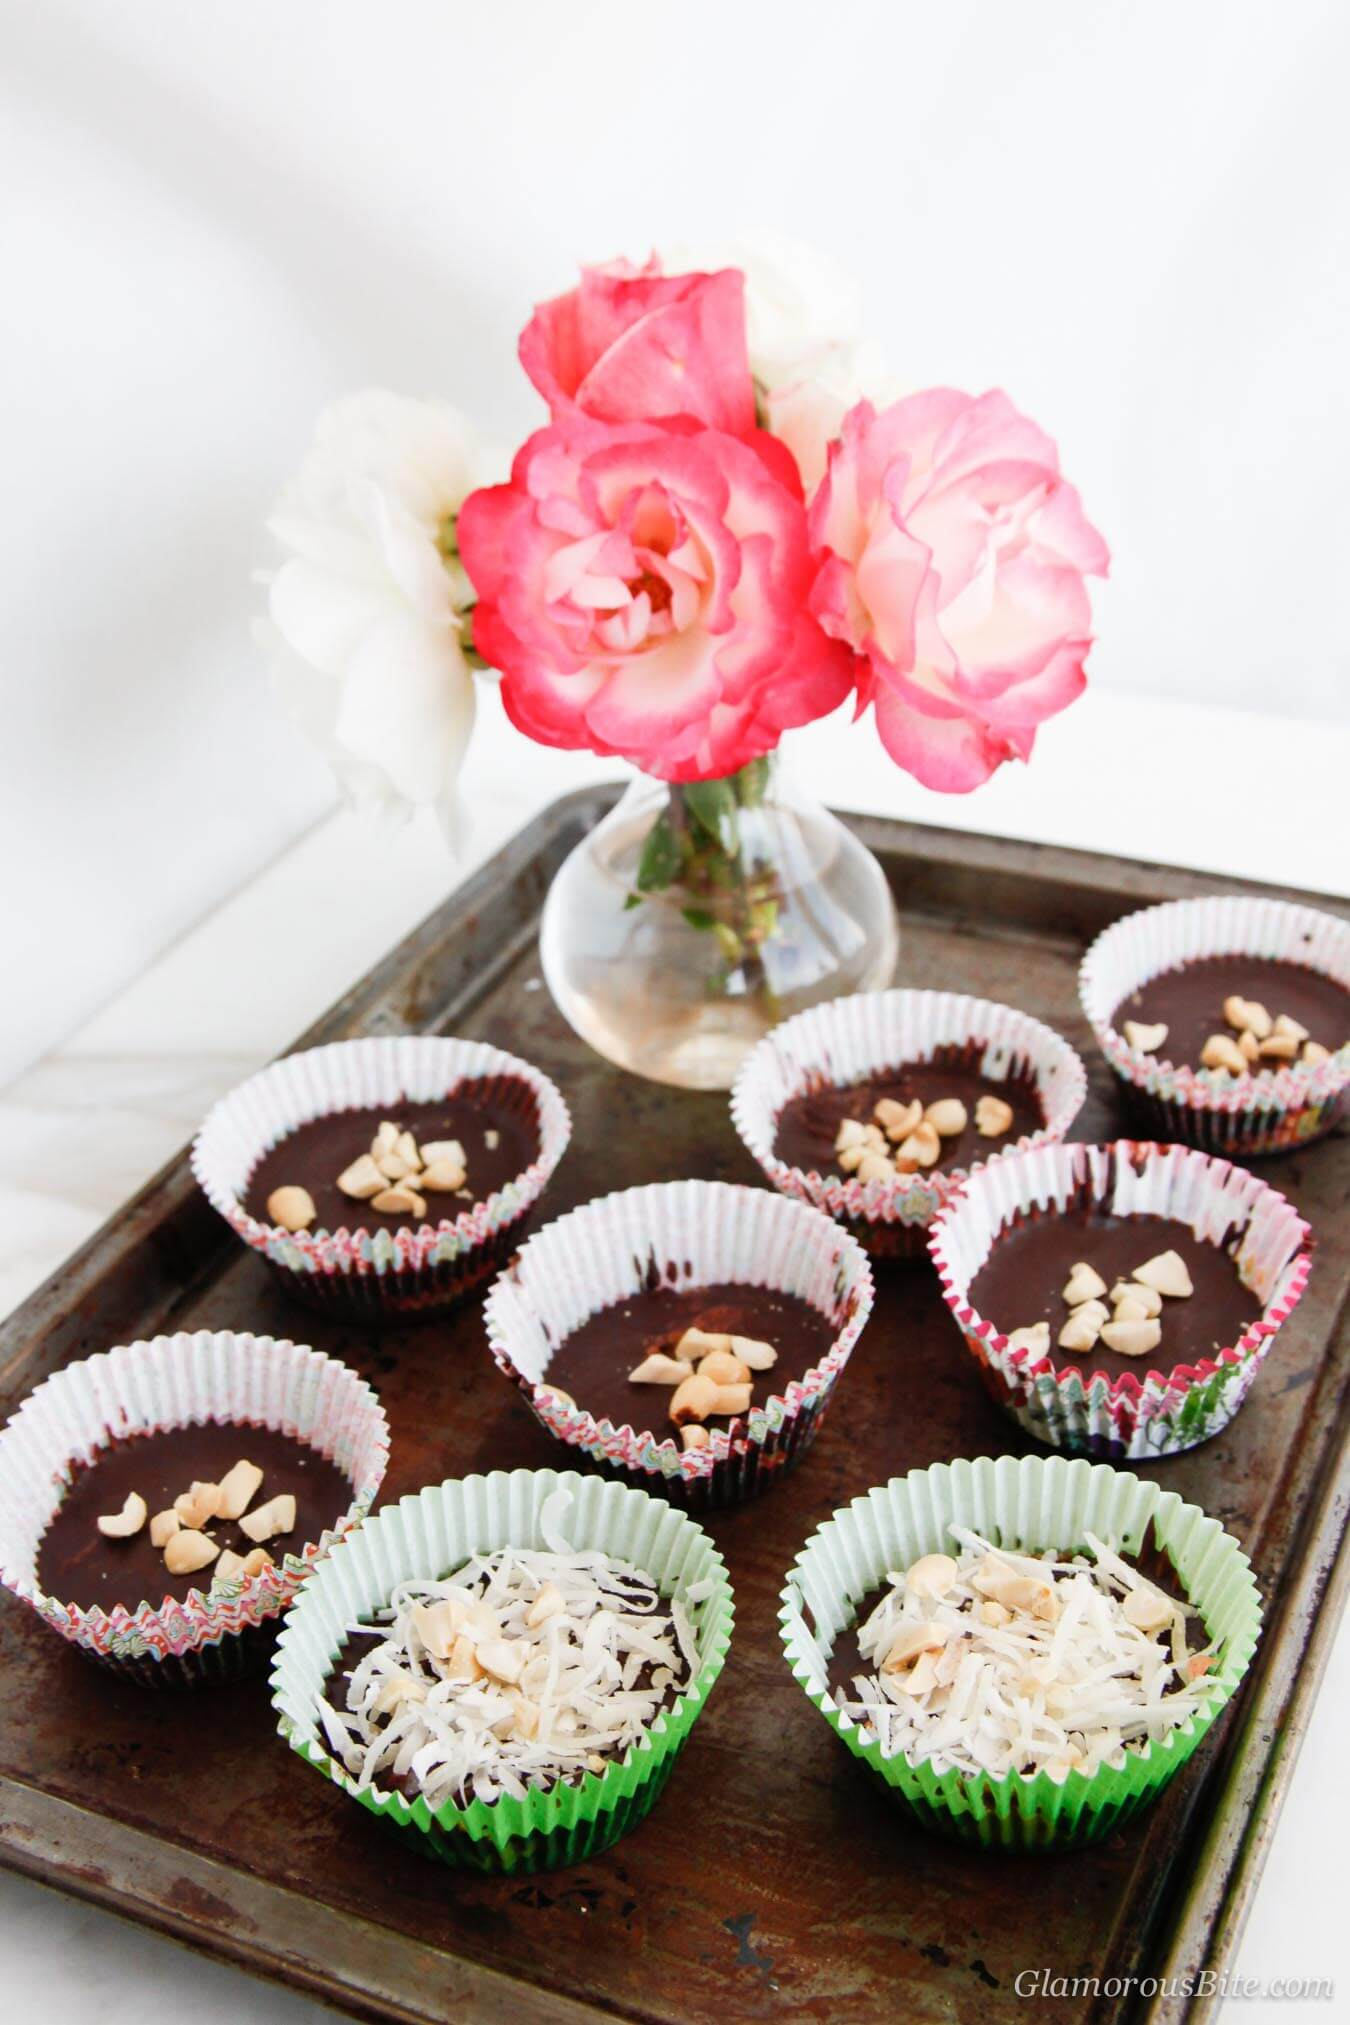 How to make Chocolate Coconut Peanut Butter Cups recipe